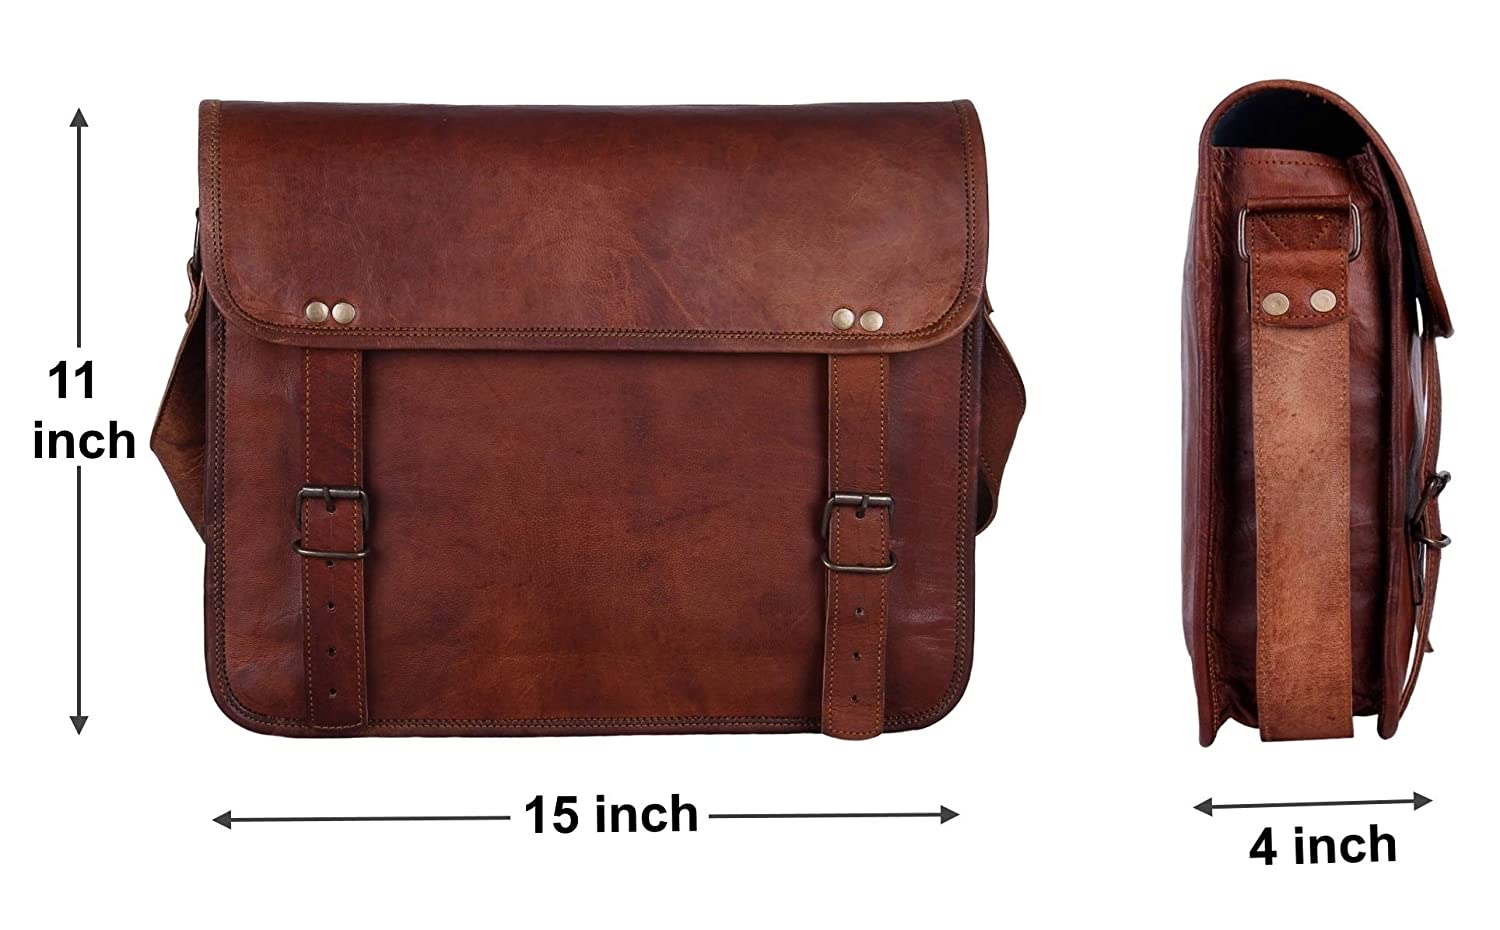 13 Handmade Leather Messenger Bag Satchel Leather Laptop Bag By Rustic Town Rustic Town Inc SHS131004KR-0HNP